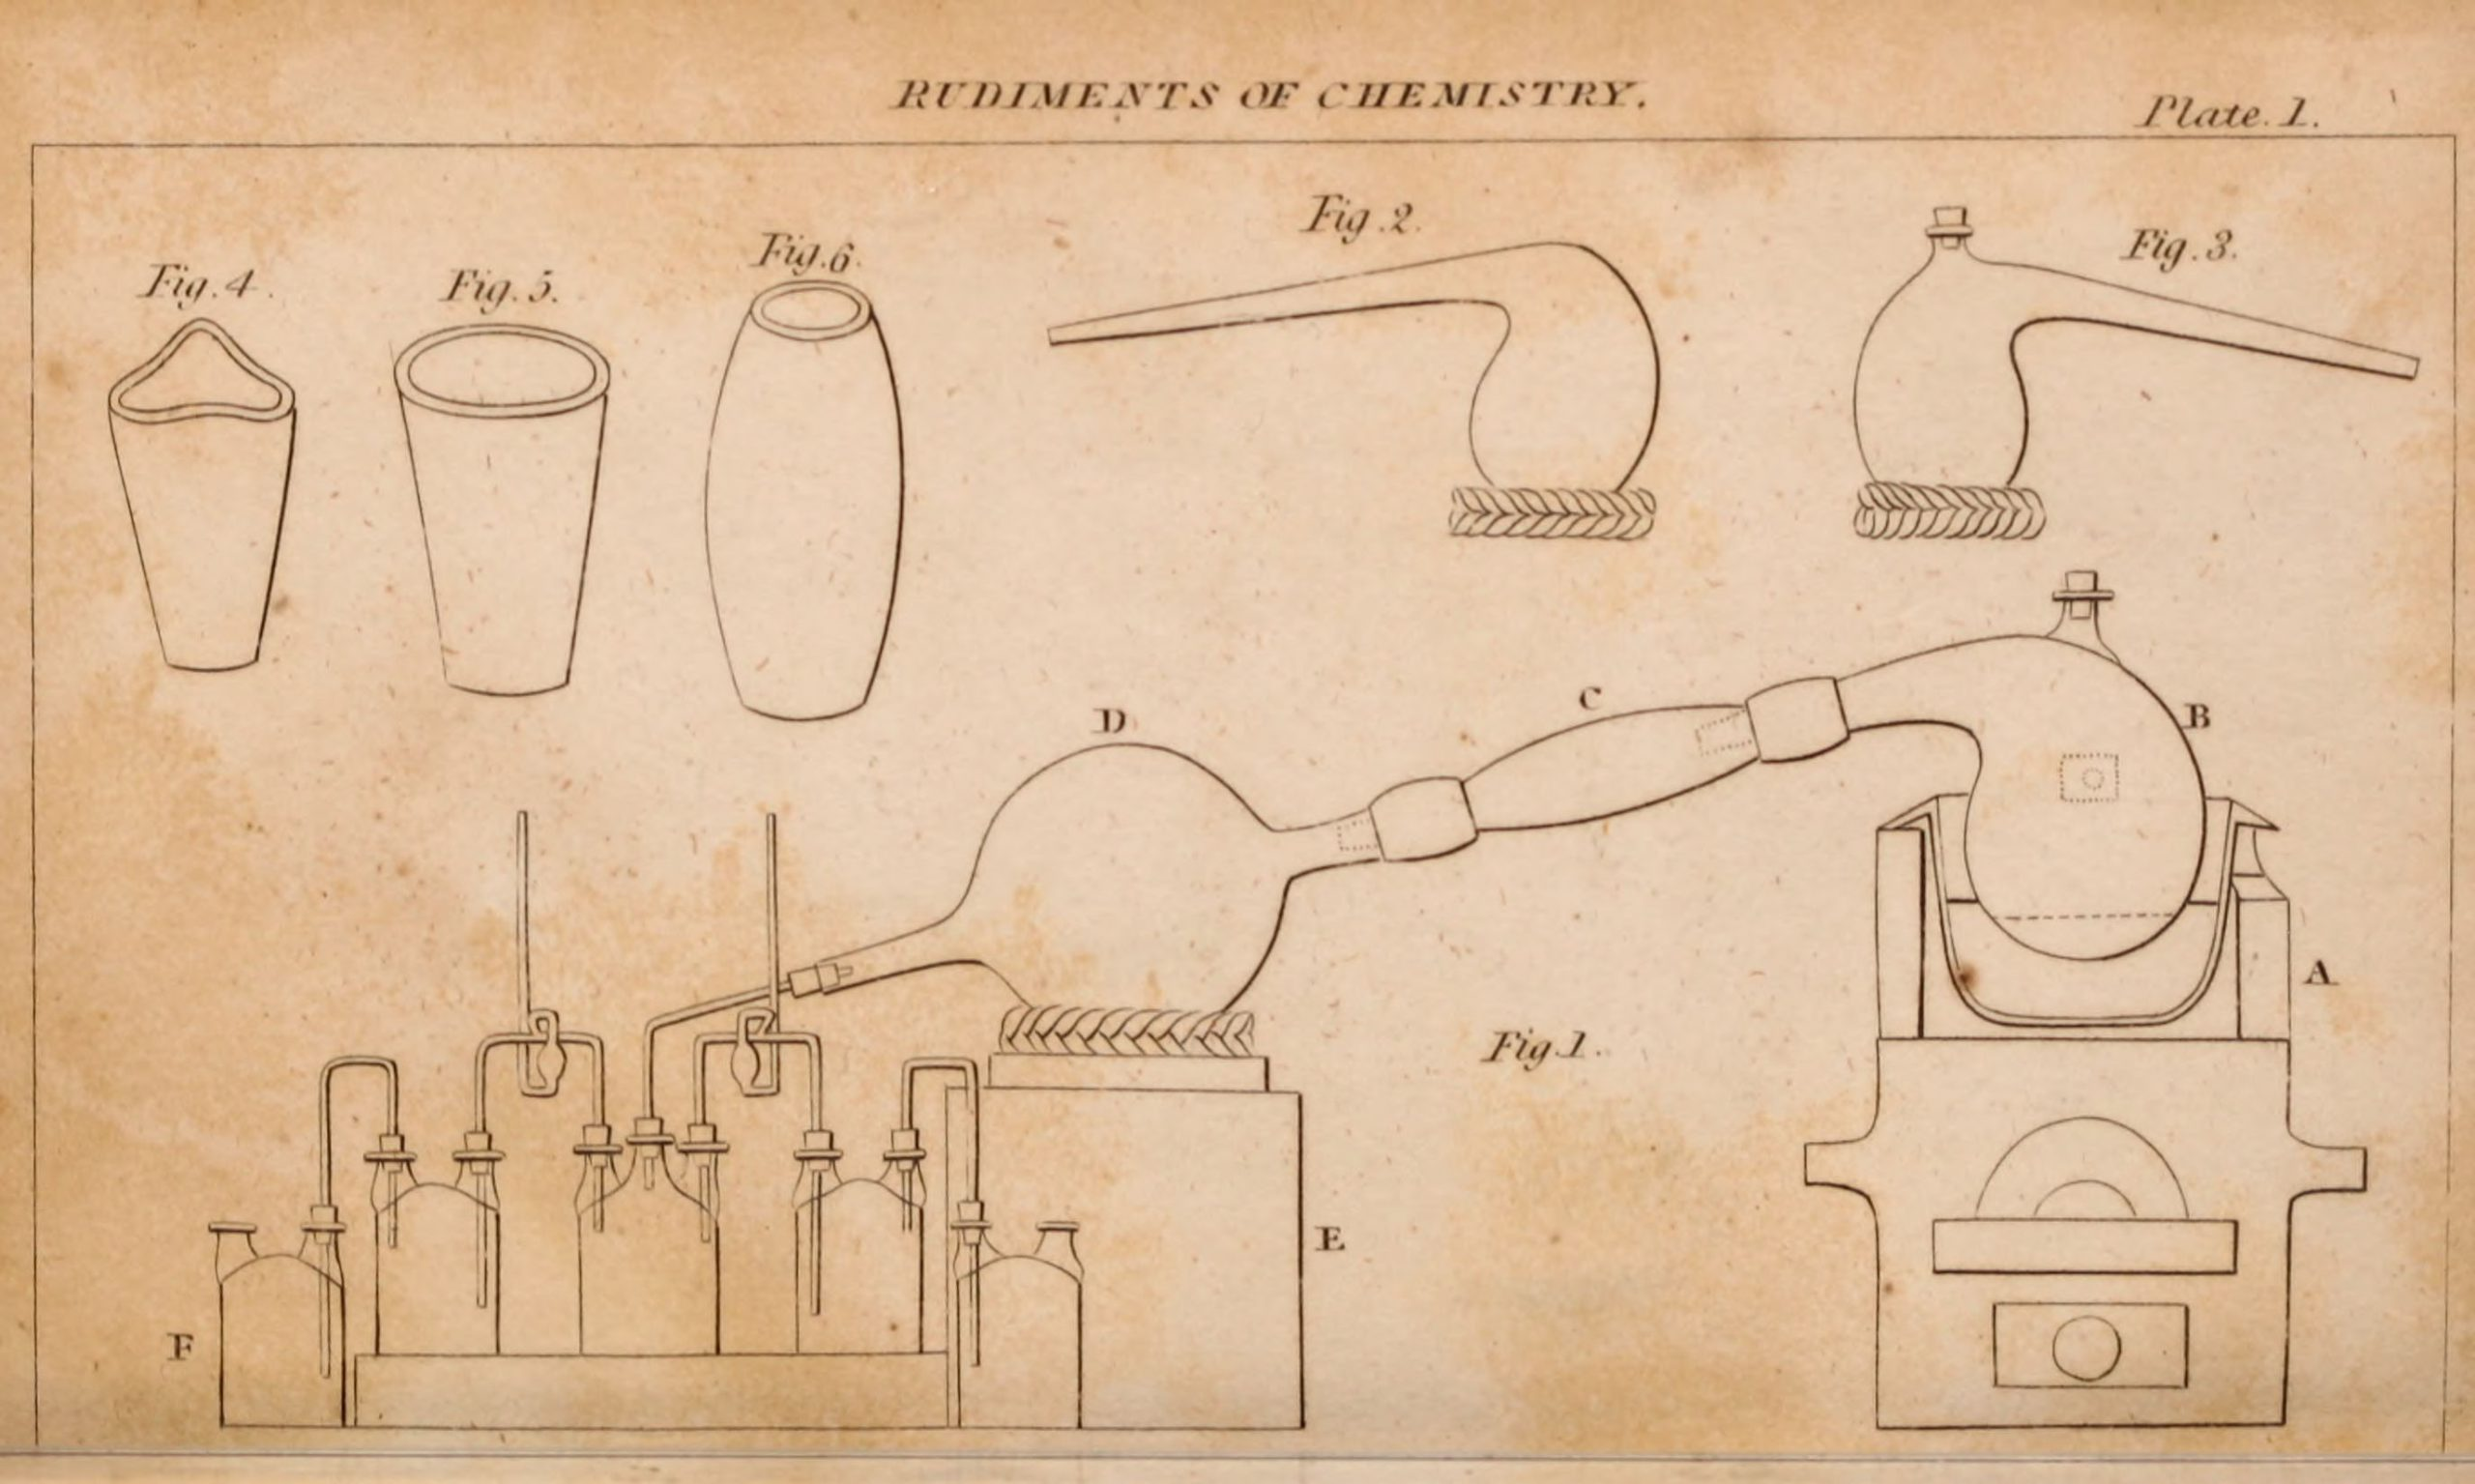 Handdrawn image of apparatus used in scientific study.